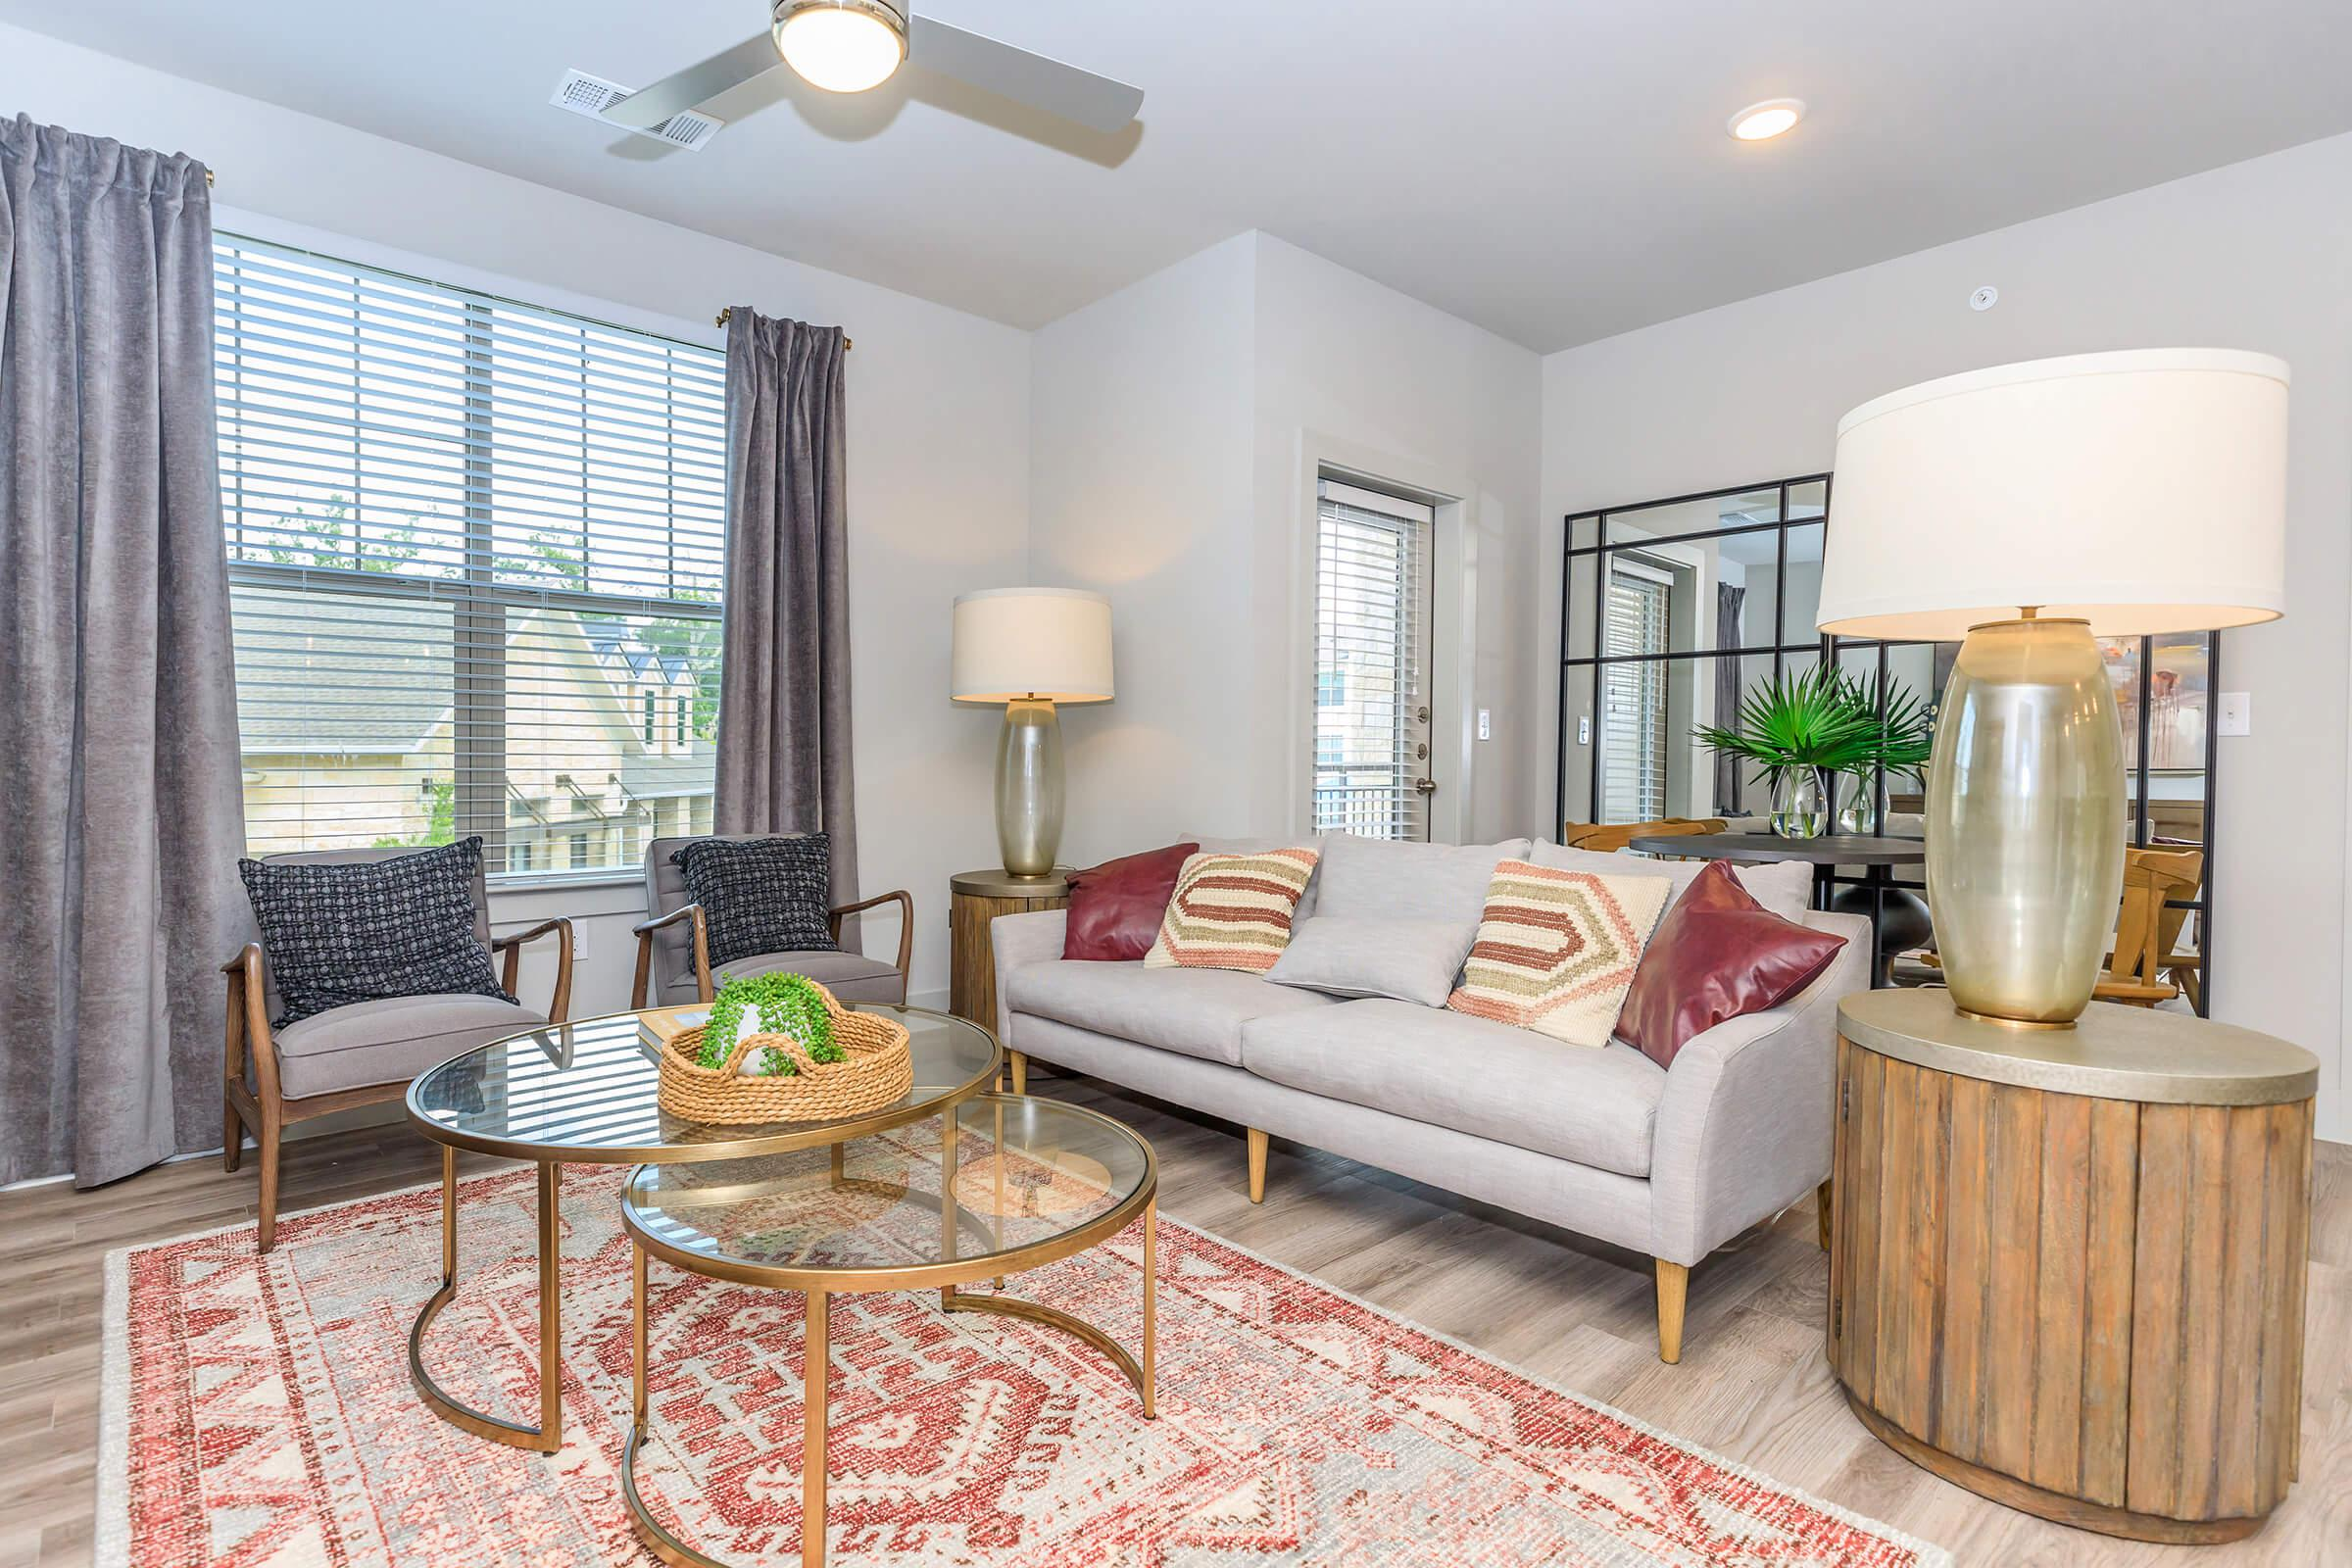 FURNISHED APARTMENT HOMES AVAILABLE  FOR RENT IN LAKE JACKSON, TEXAS.